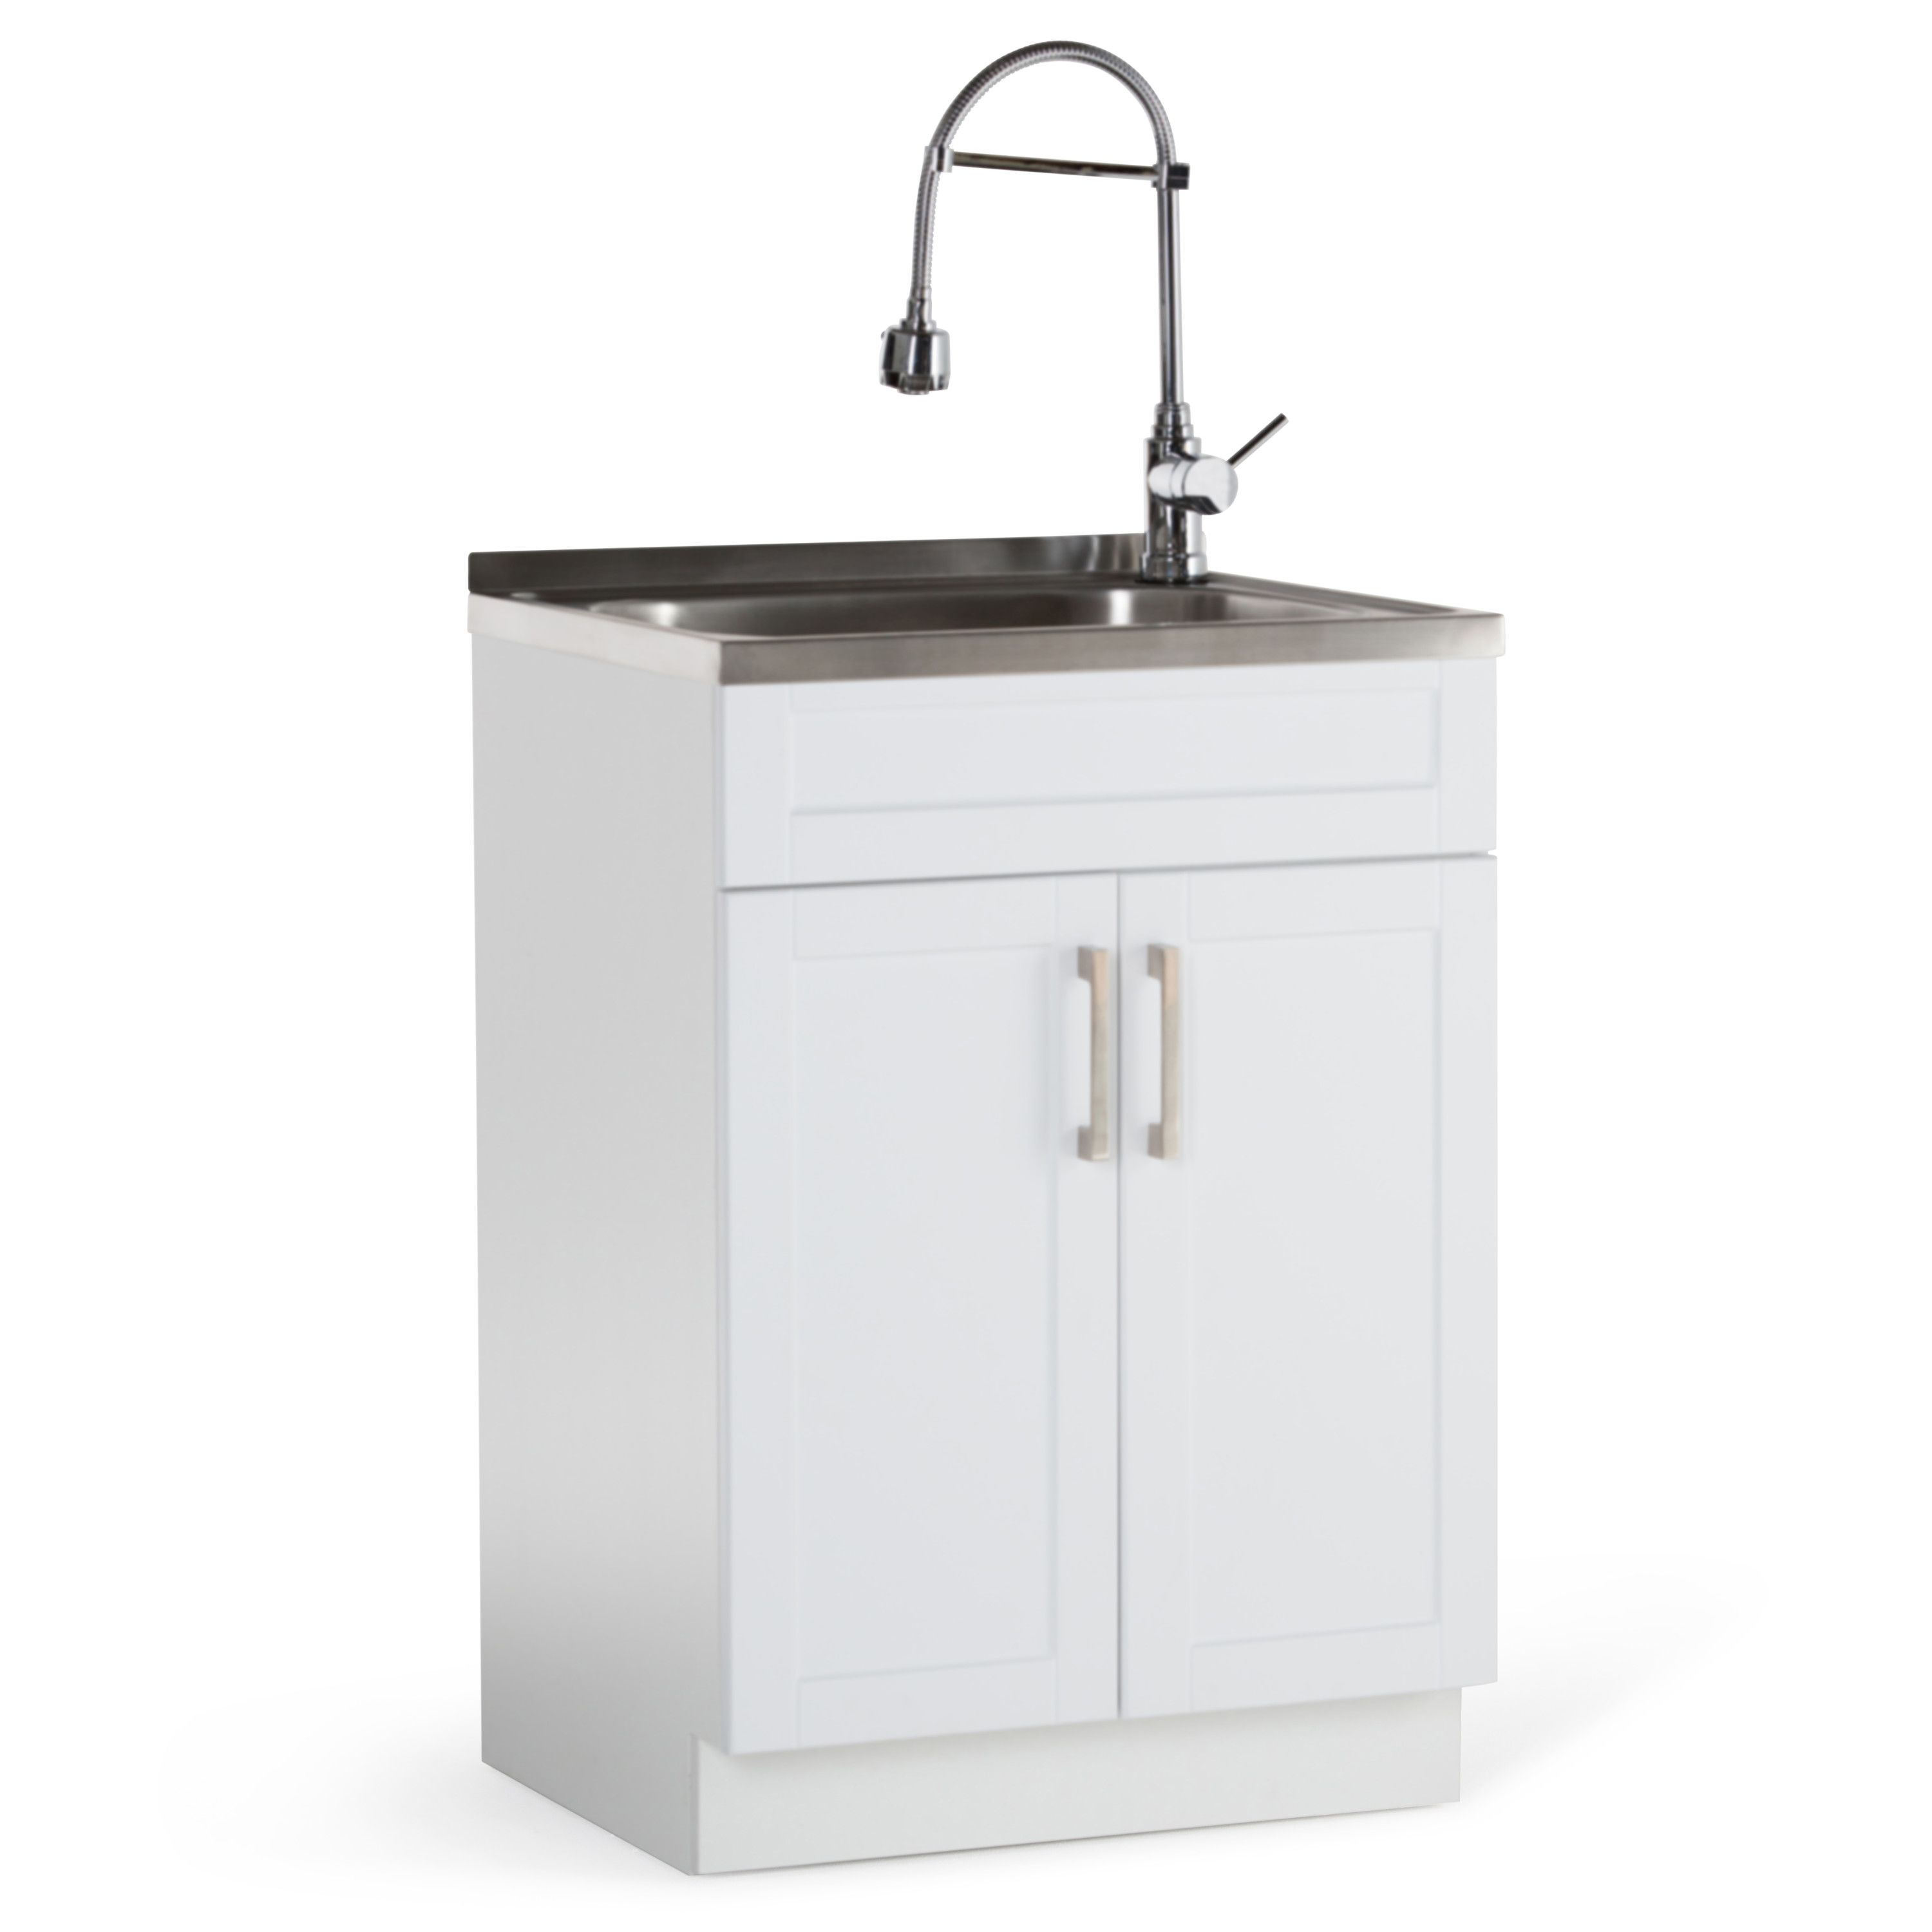 Hennessy 23 6 X 19 7 Freestanding Laundry Sink With Faucet Stainless Steel Sinks Laundry Cabinets Clean Stainless Steel Sink